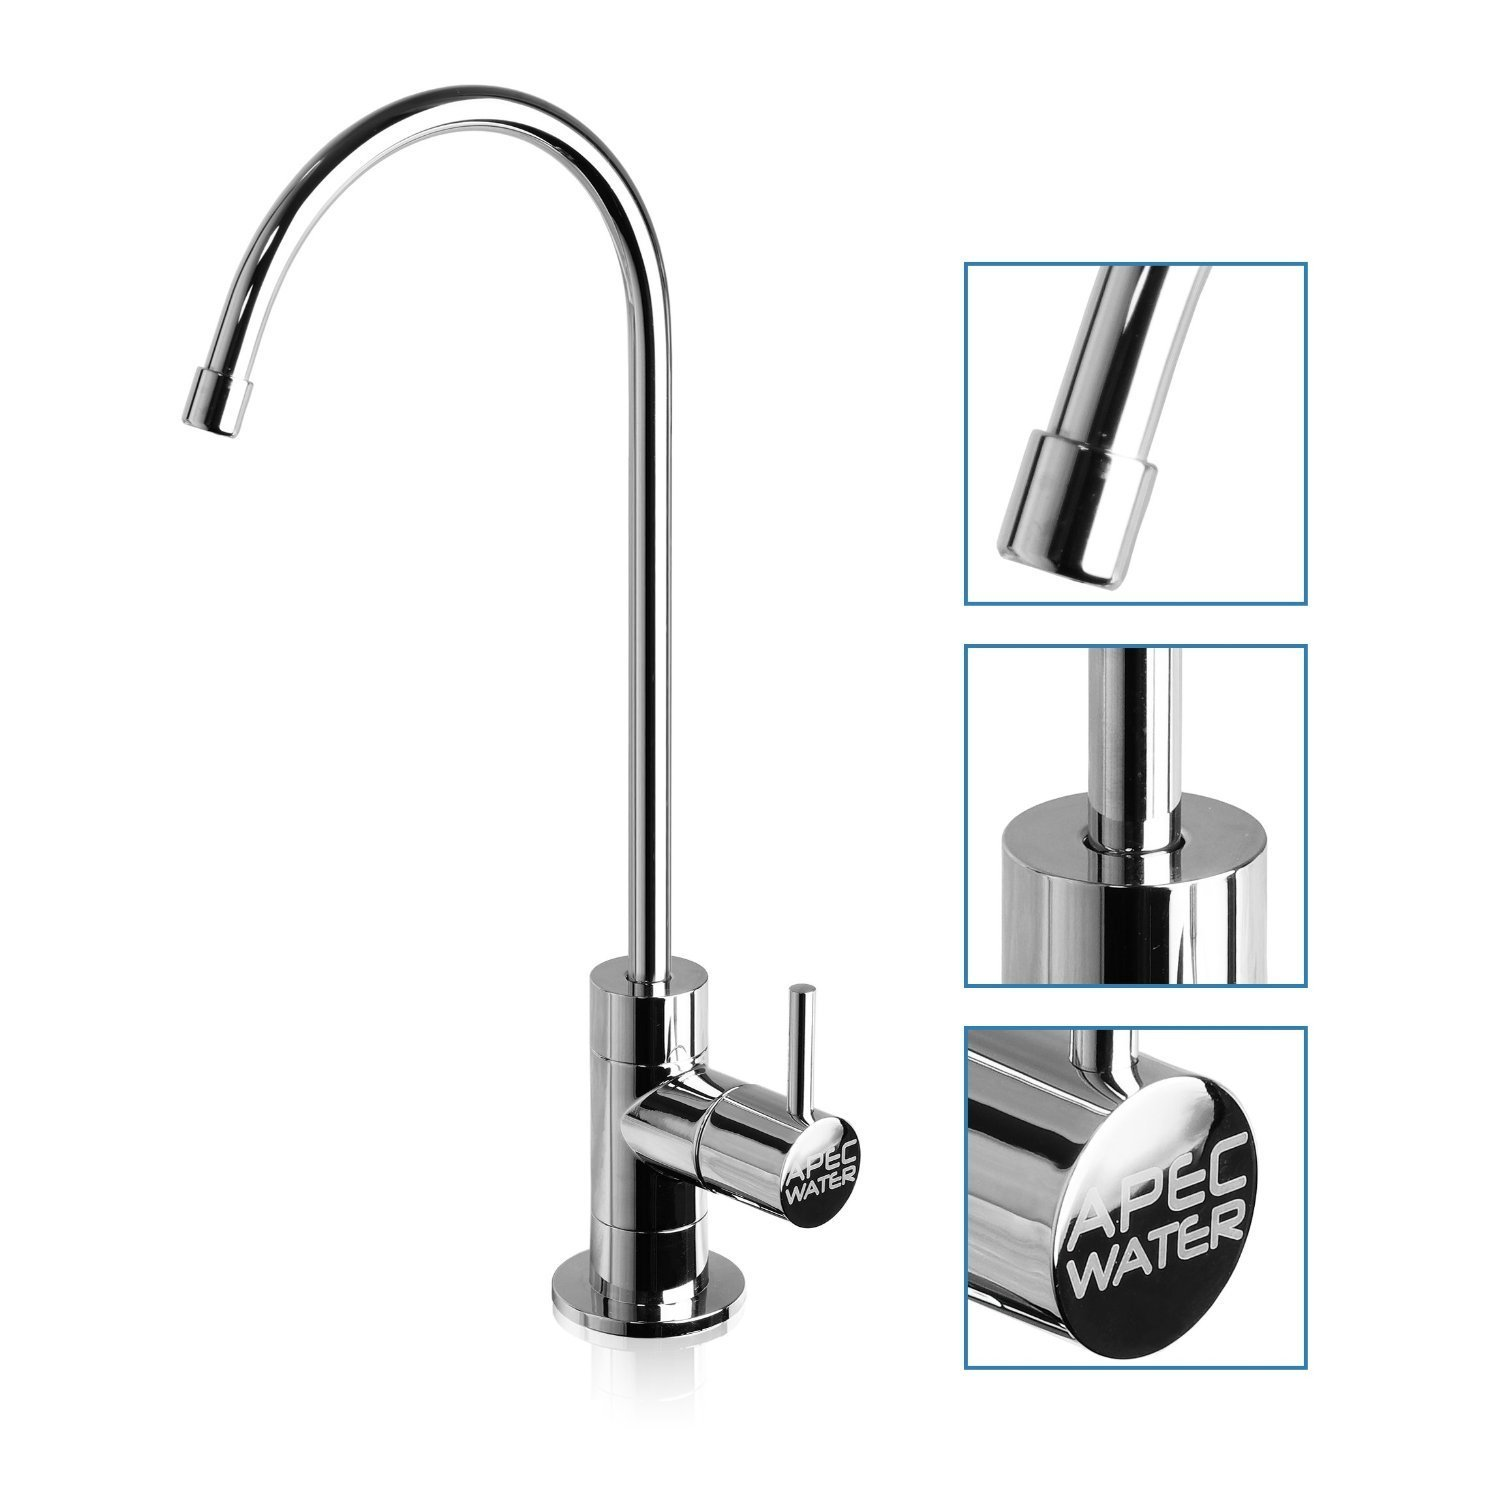 APEC Water Systems ROES-PH75 Top Tier, silver colored, white